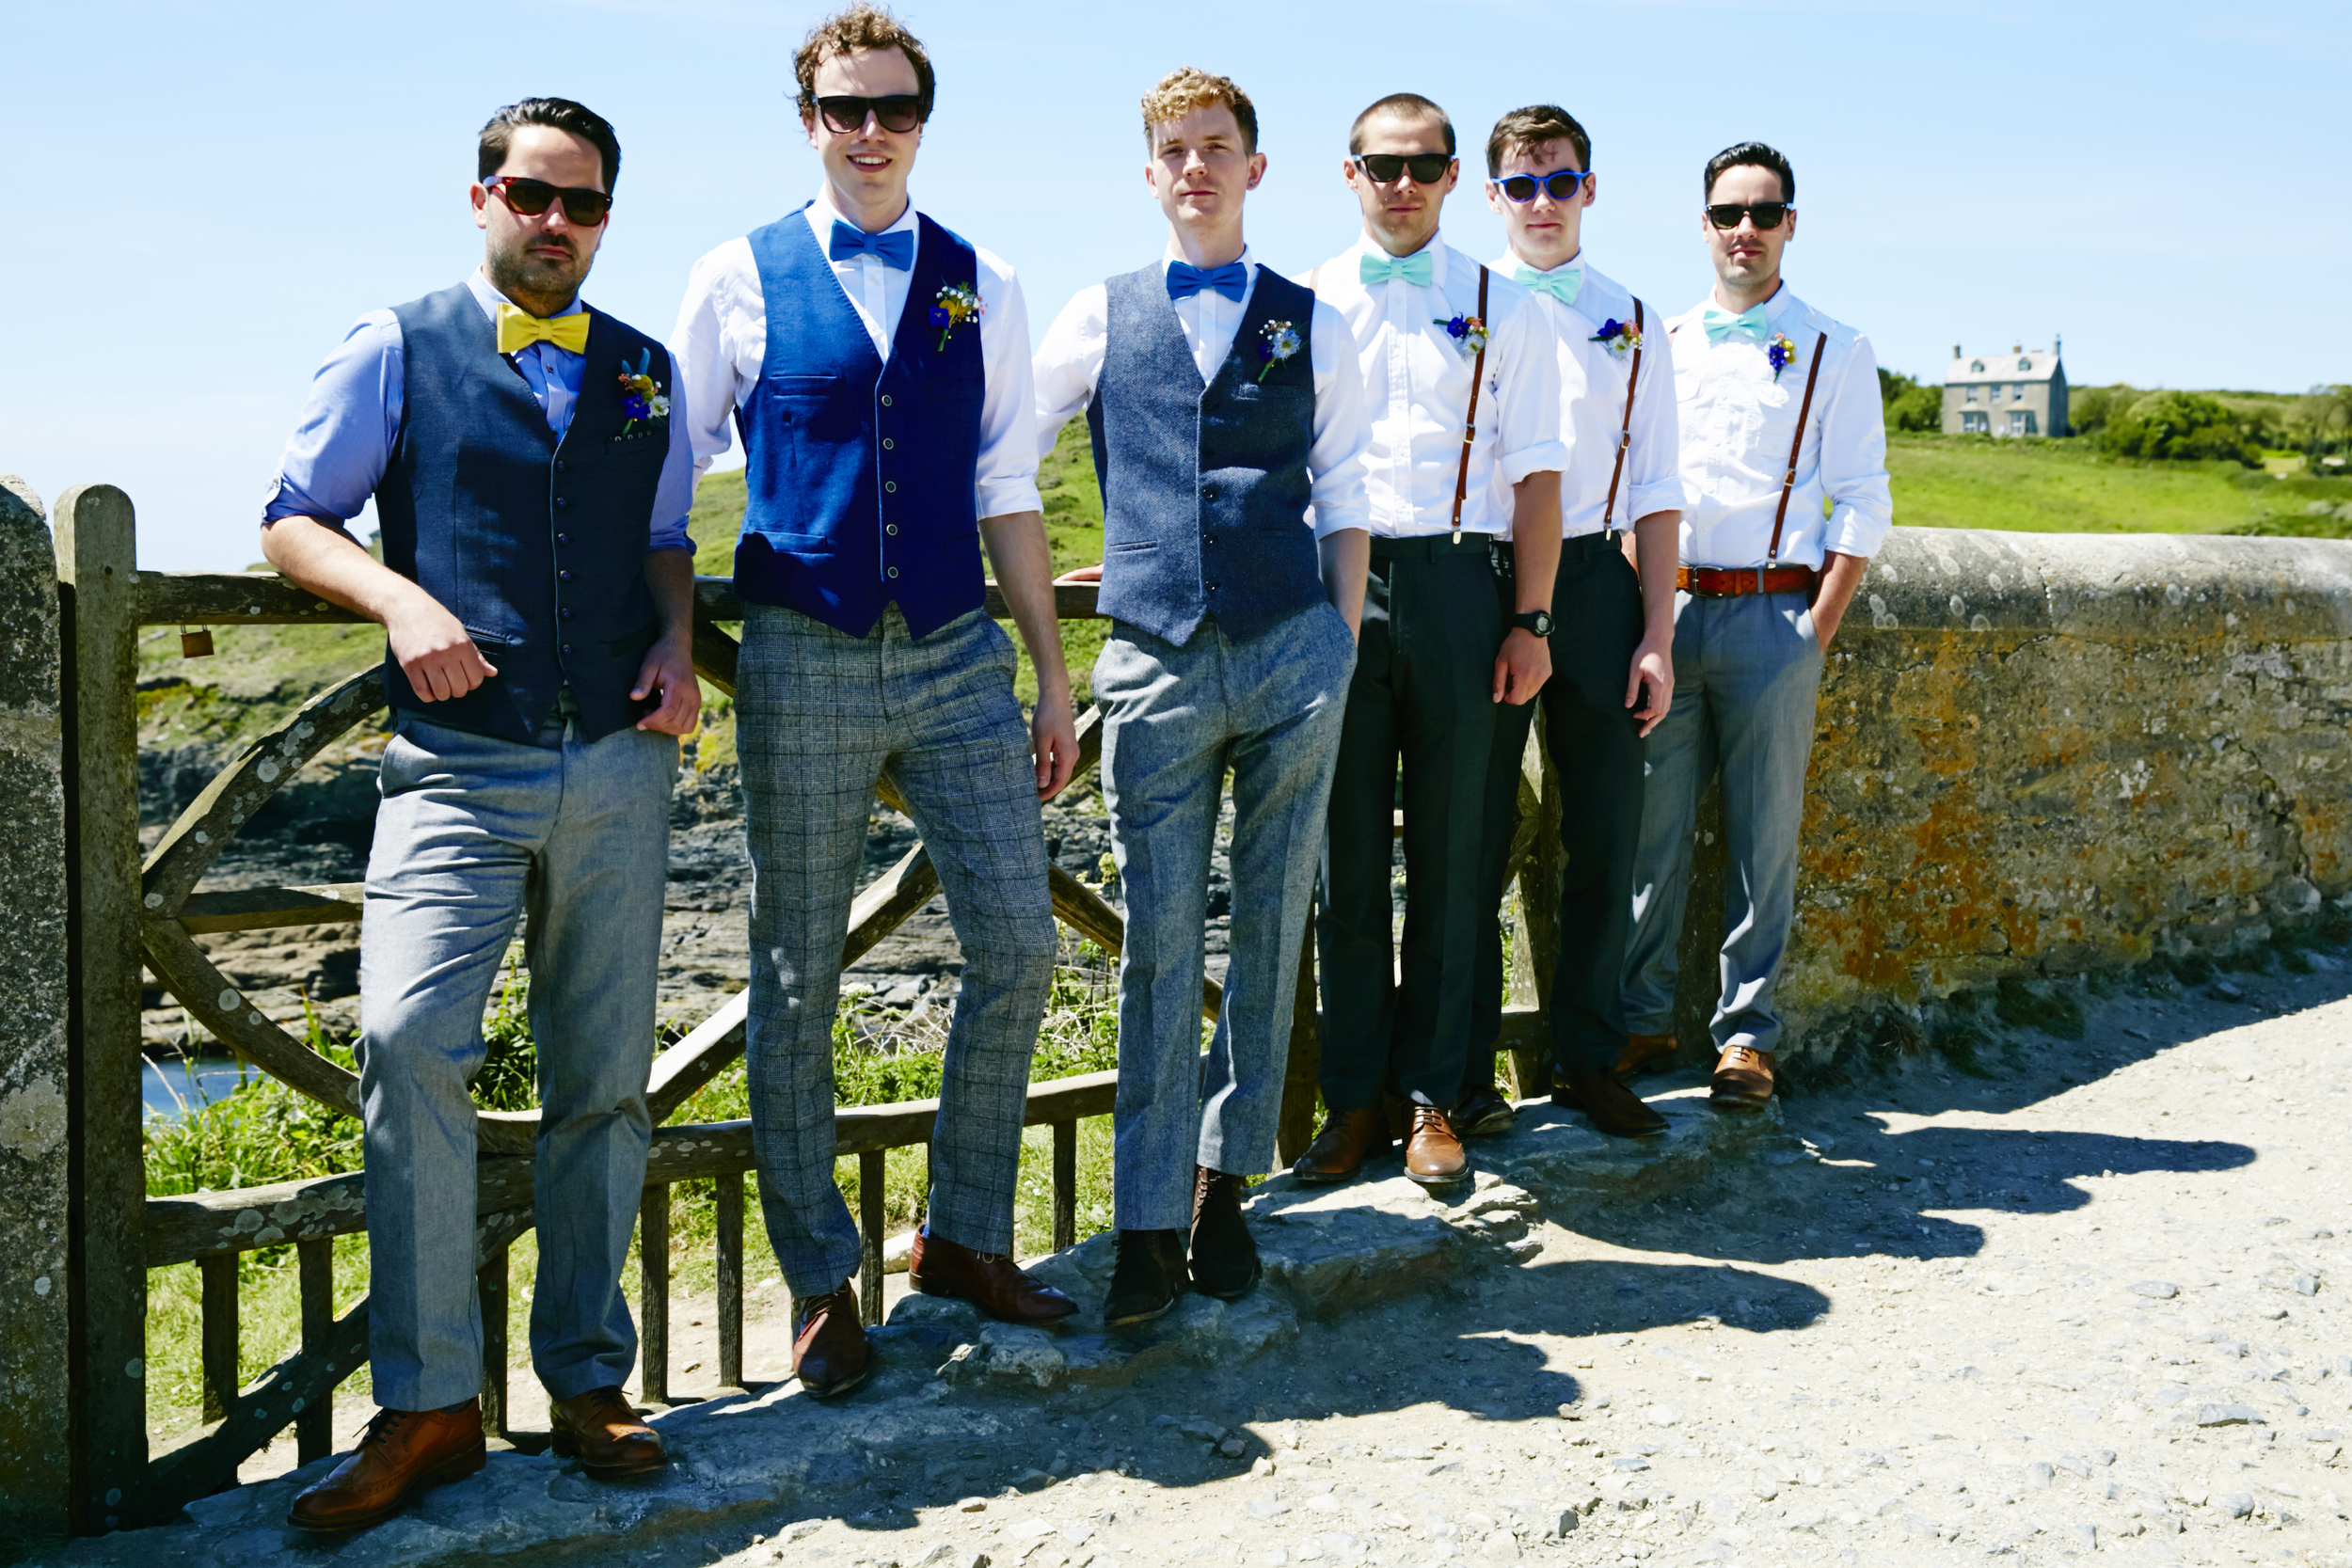 groom-wedding-outfit-ideas